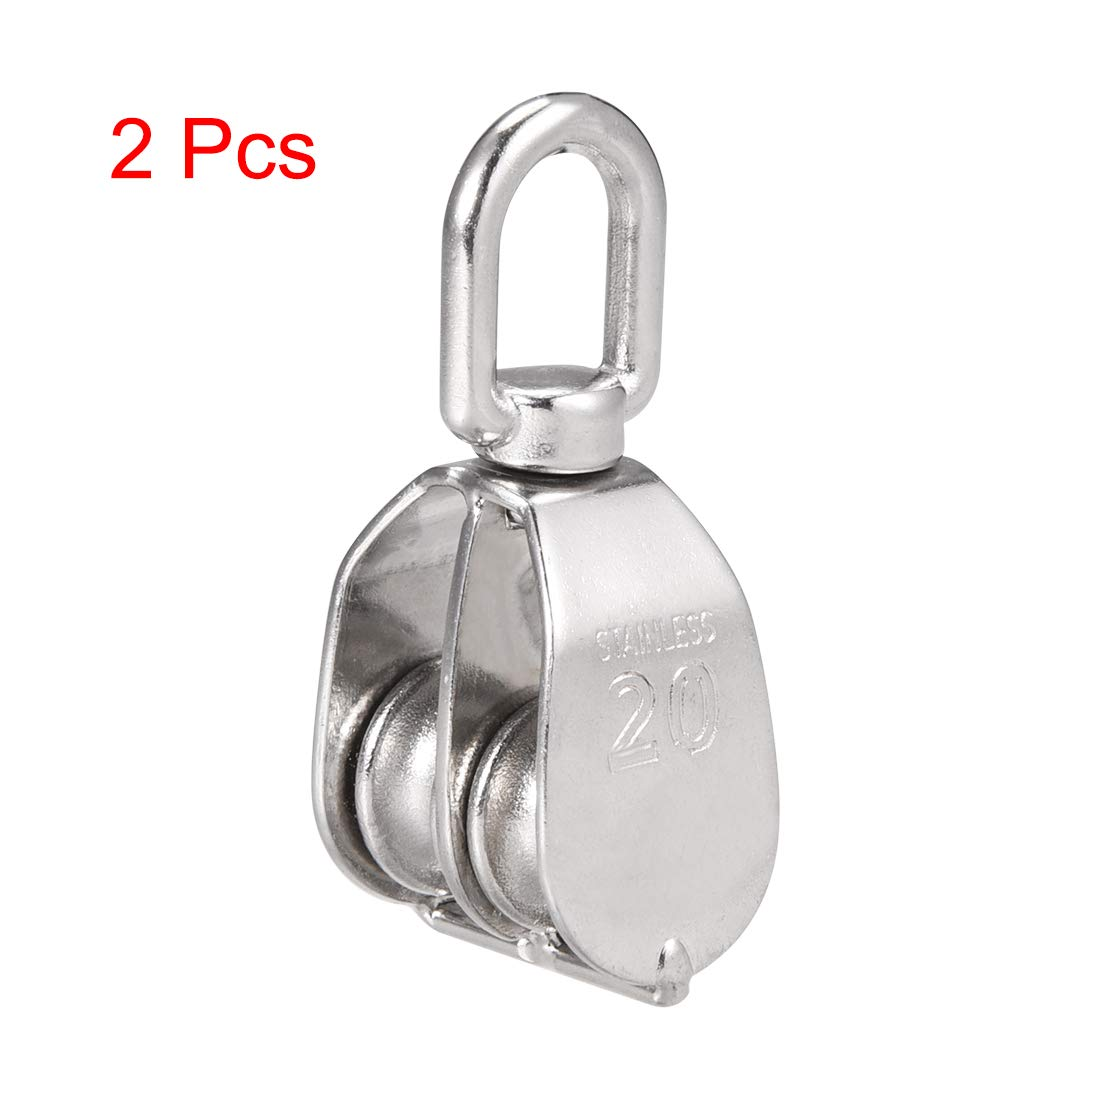 uxcell 2pcs M20 Lifting Crane Swivel Hook Double Pulley Block Hanging Wire Towing Wheel 304 Stainless Steel